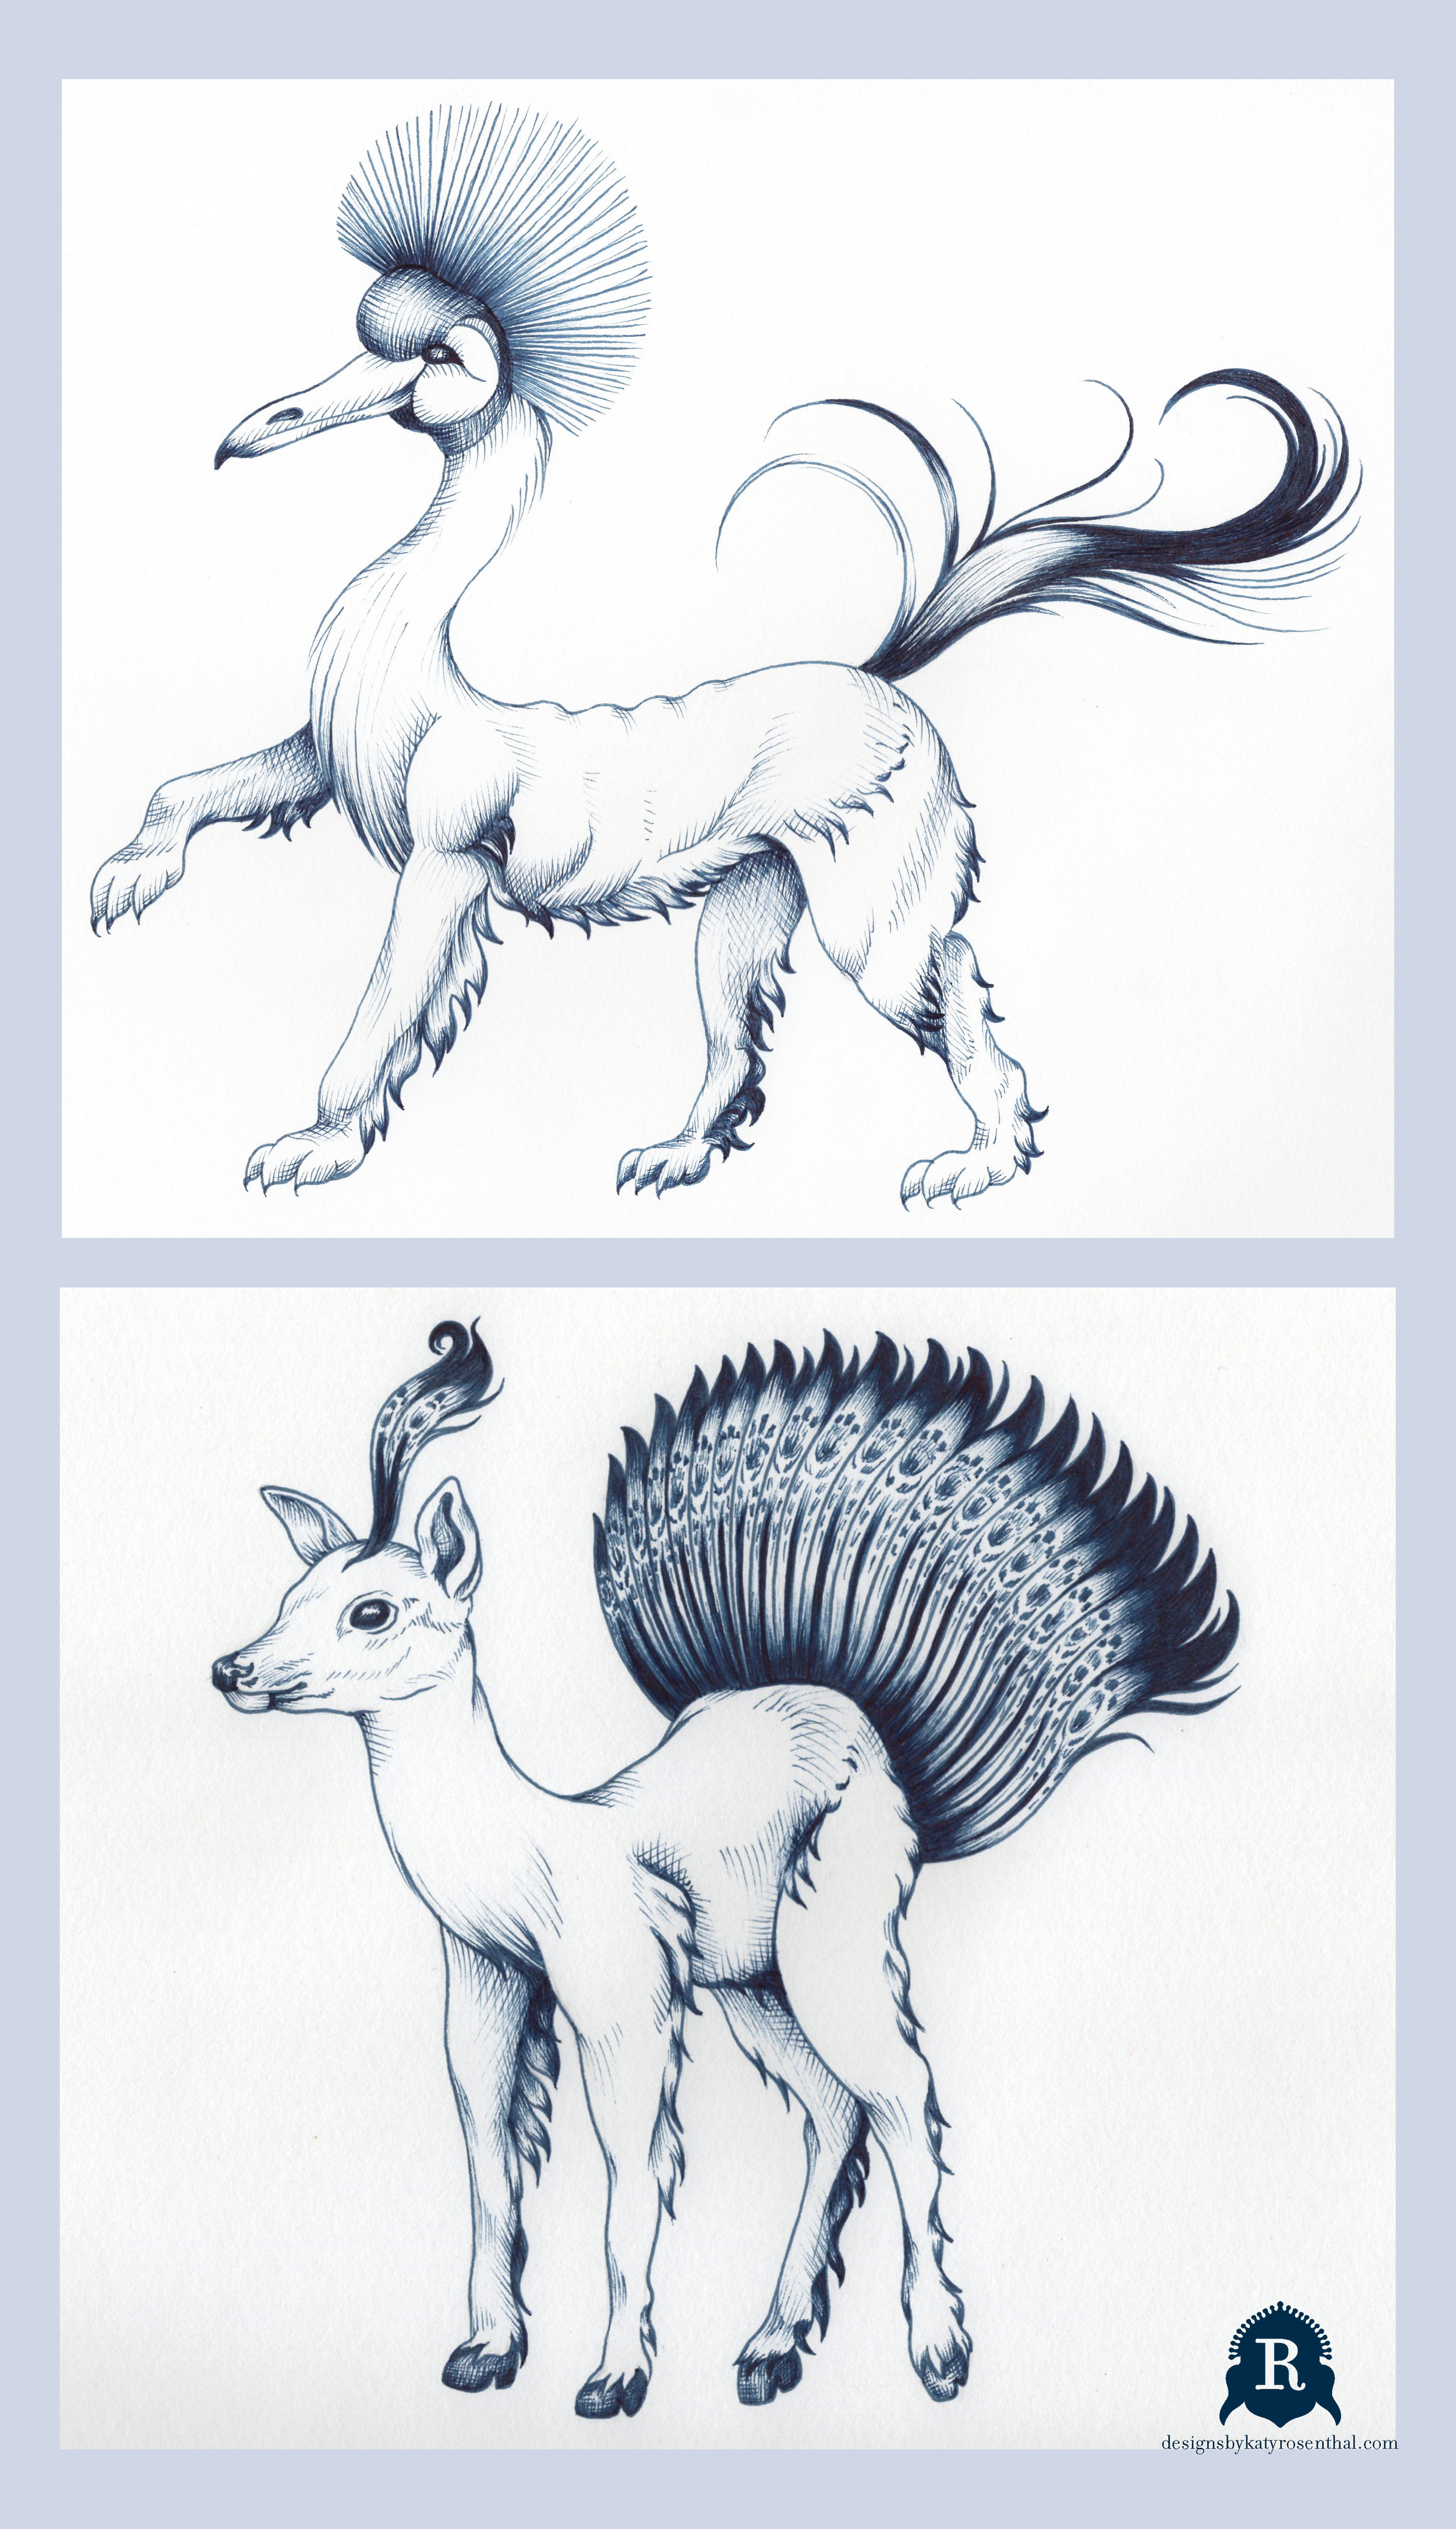 """My original drawings for my invented """"mythological"""" creatures. On top, """"Bendira,"""" and on bottom, """"Cleofin."""" Bendira is a composite of a Red Crowned Crane's head, a lion's body (styled after how lions were typically illustrated in engravings from the 16th century, the time period during which most of the maps I was looking to for reference were made), and a horse's tail. Cleofin is a deer (stylized in the same manner) with a tail and plume inspired by those of a peacock."""